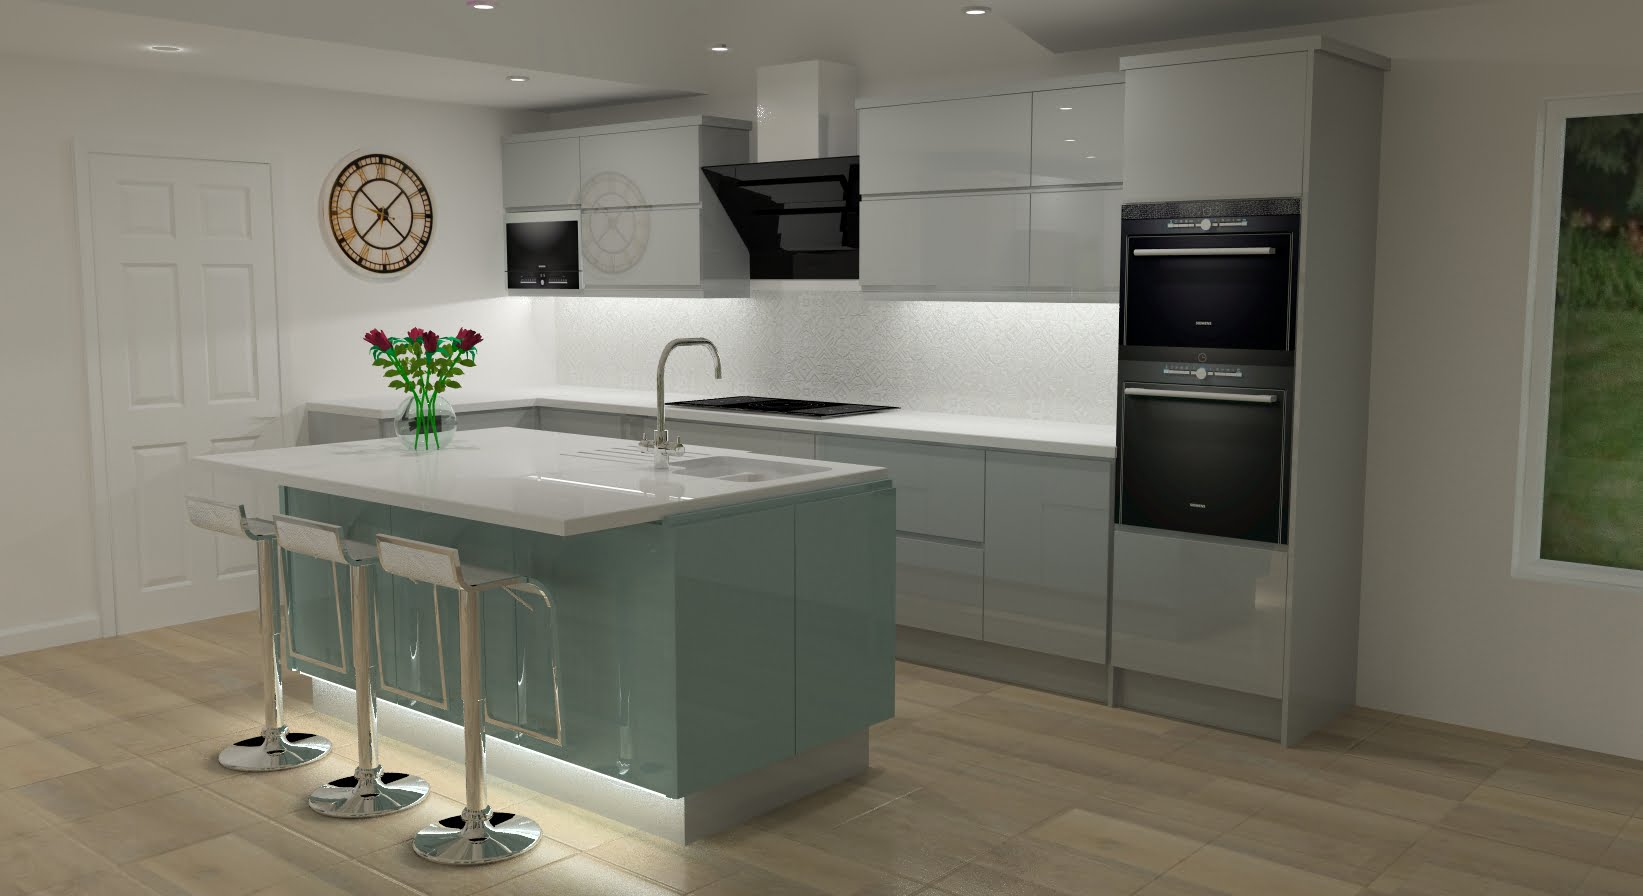 Latest kitchen design for harlow wood mansfield client for Kitchen world